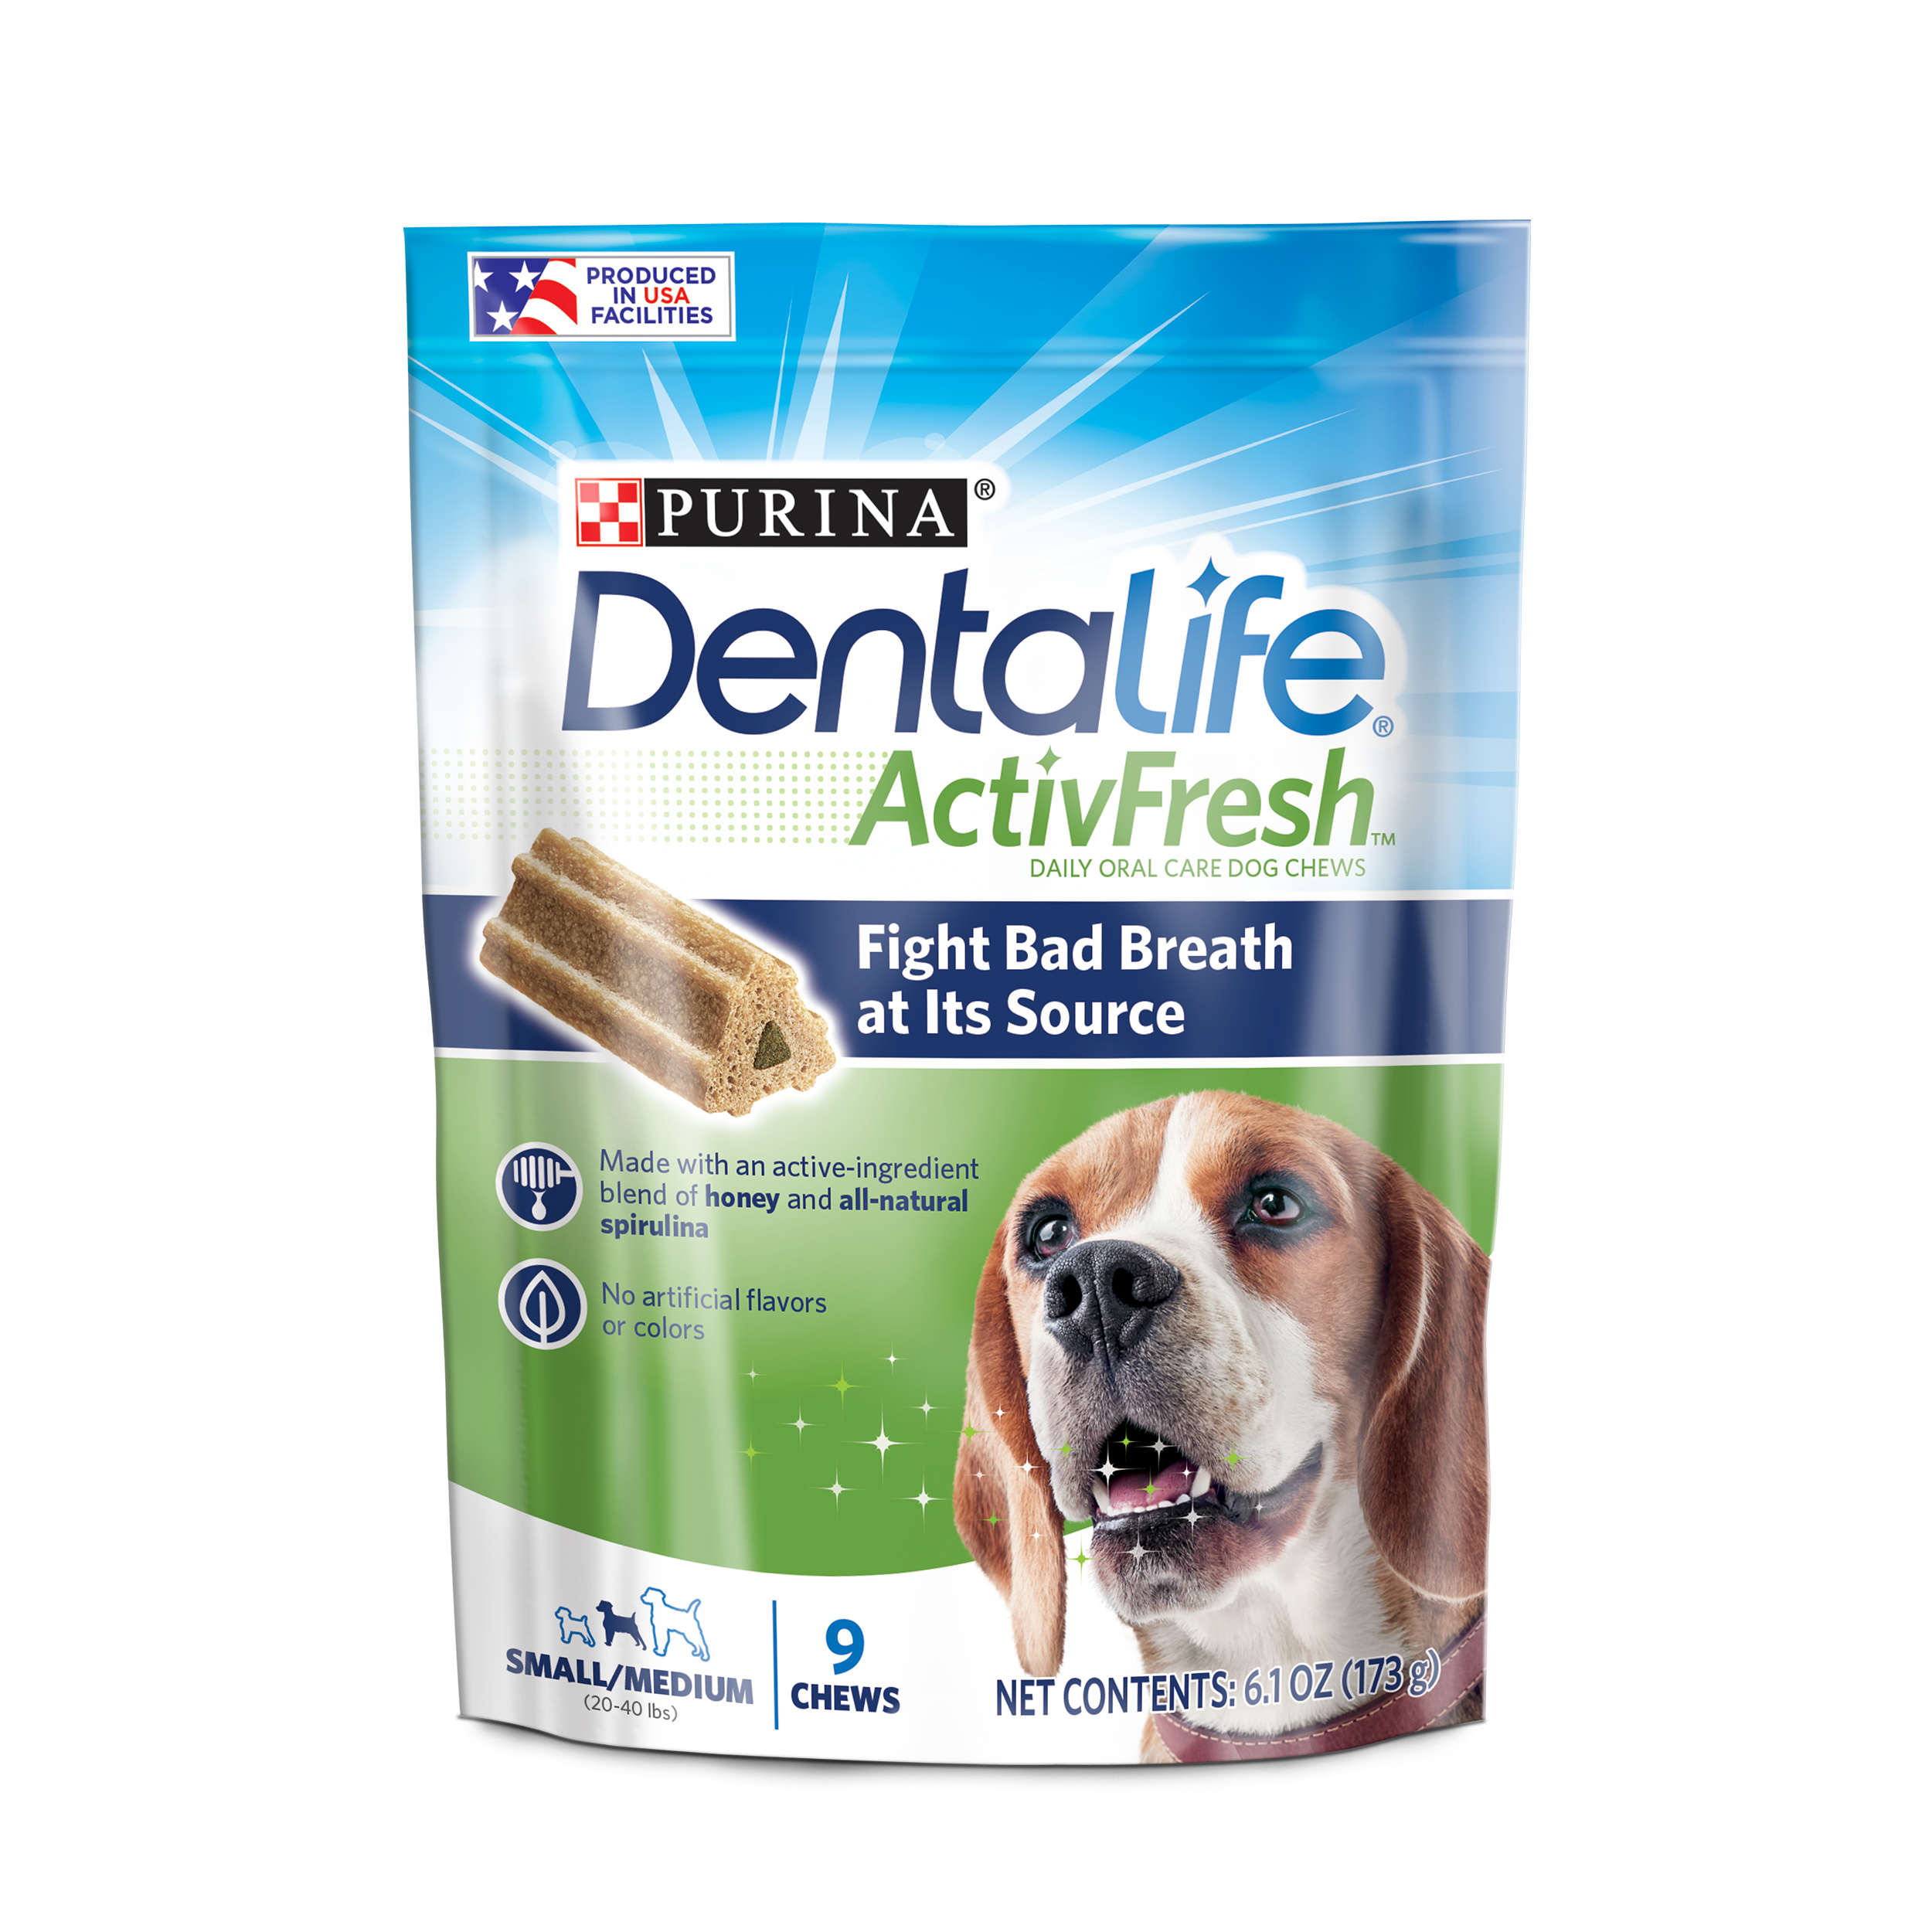 Purina DentaLife Small/Medium Breed Dog Dental Chews; ActivFresh Daily Oral Care Small/Medium Chews - 9 ct. Pouch